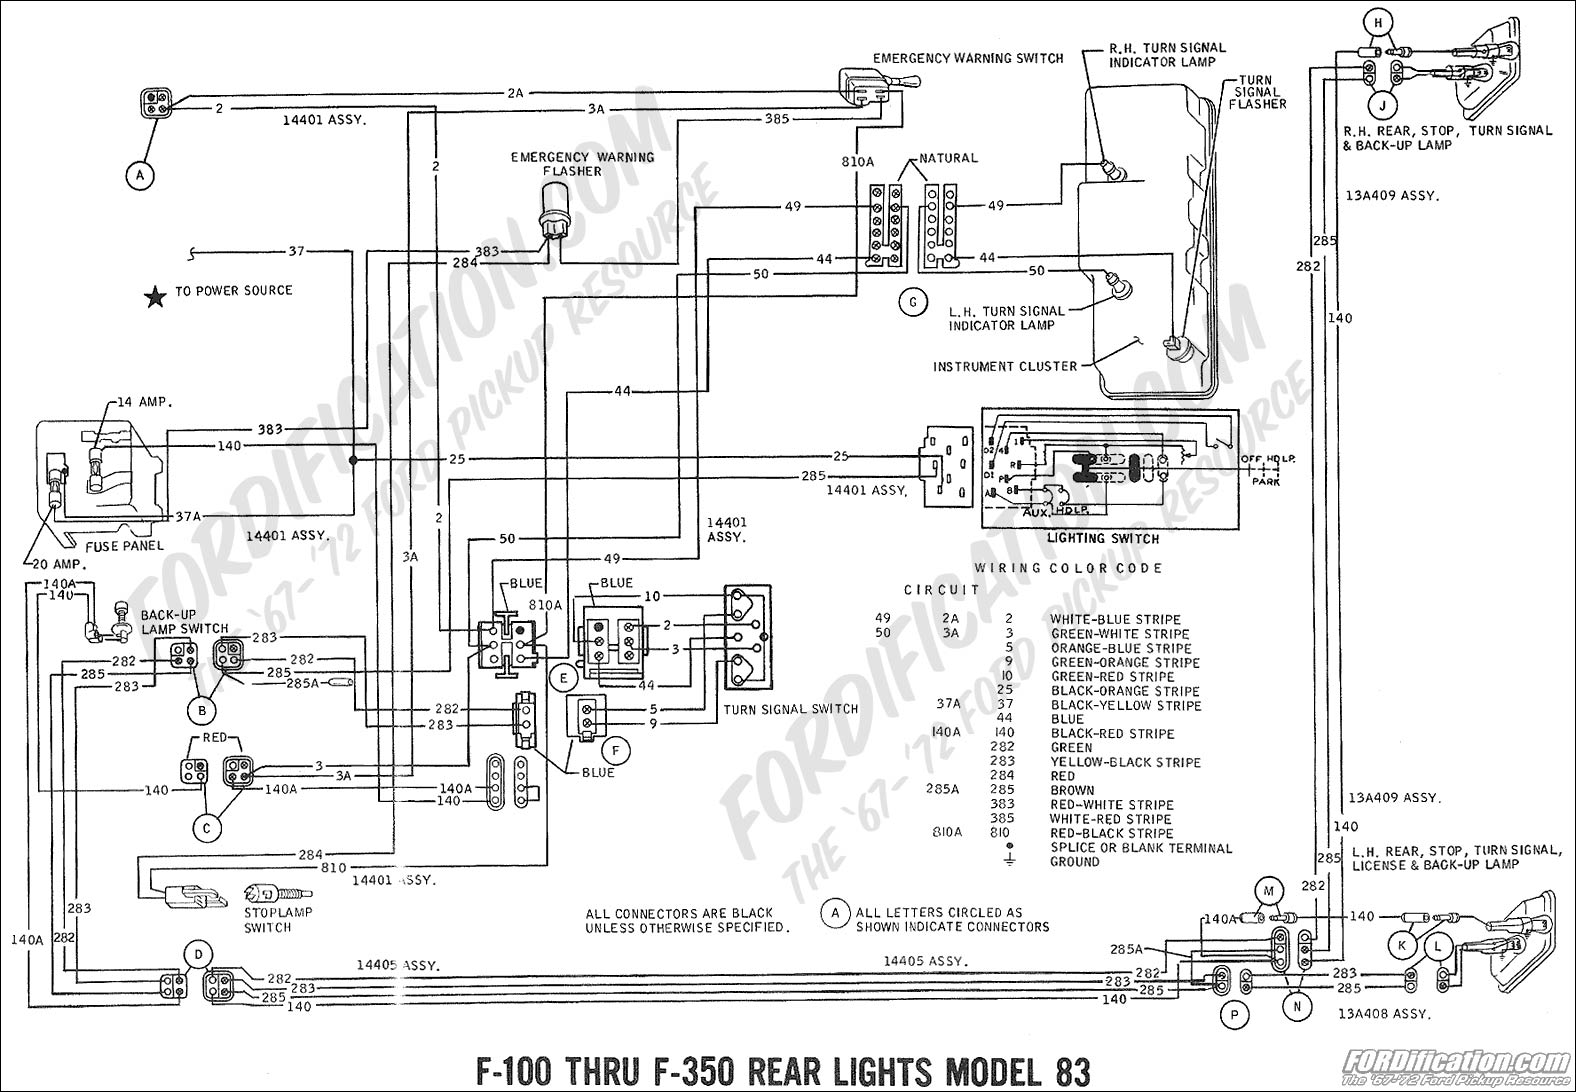 62 Ford Fairlane Wiring Diagram Trusted 1964 Manual Free Download Residential Mercury Milan 1962 Truck